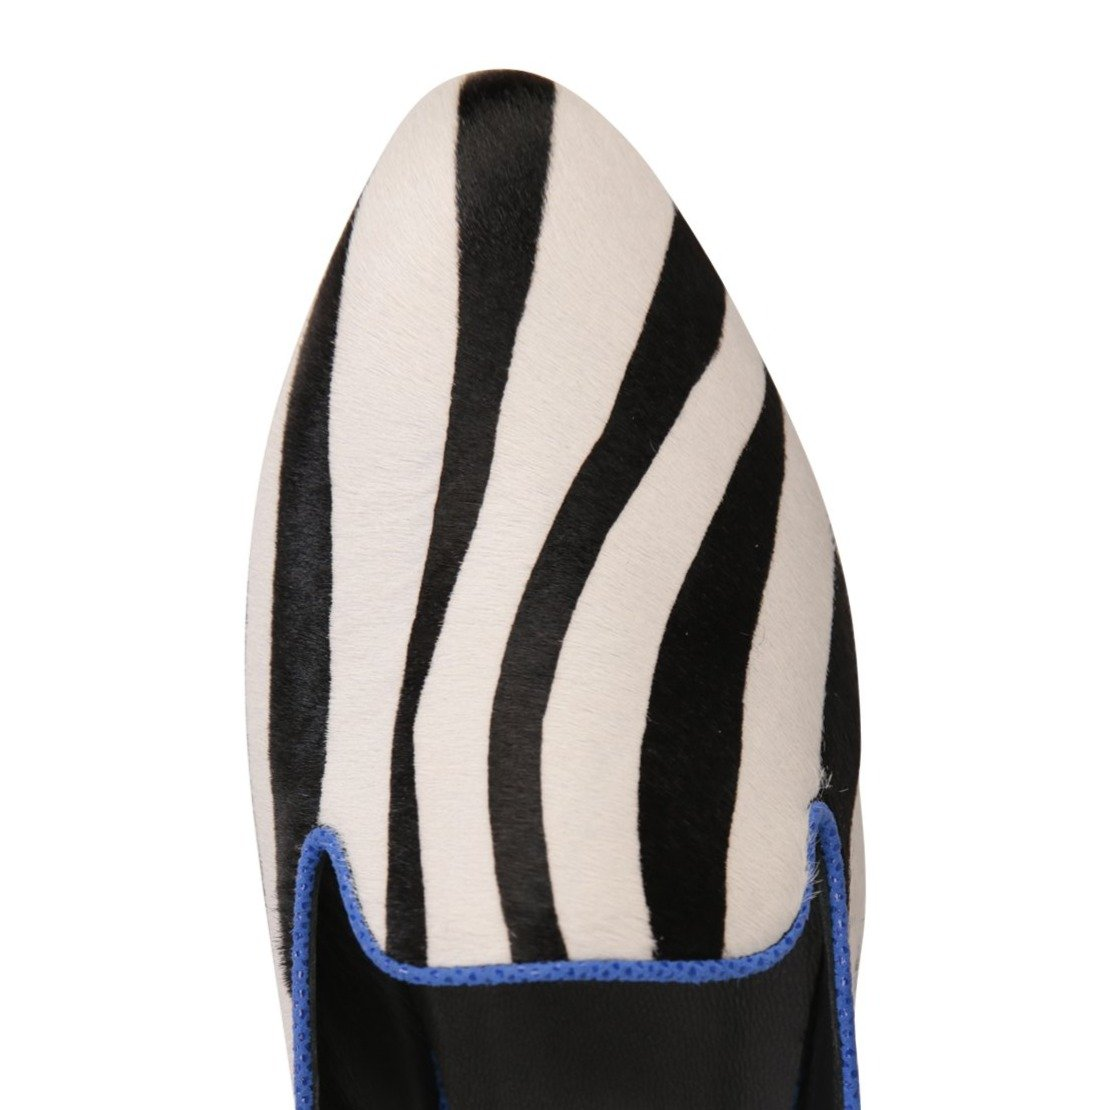 ISEO - Calf Hair Zebra + Karung Cobalt, VIAJIYU - Women's Hand Made Sustainable Luxury Shoes. Made in Italy. Made to Order.